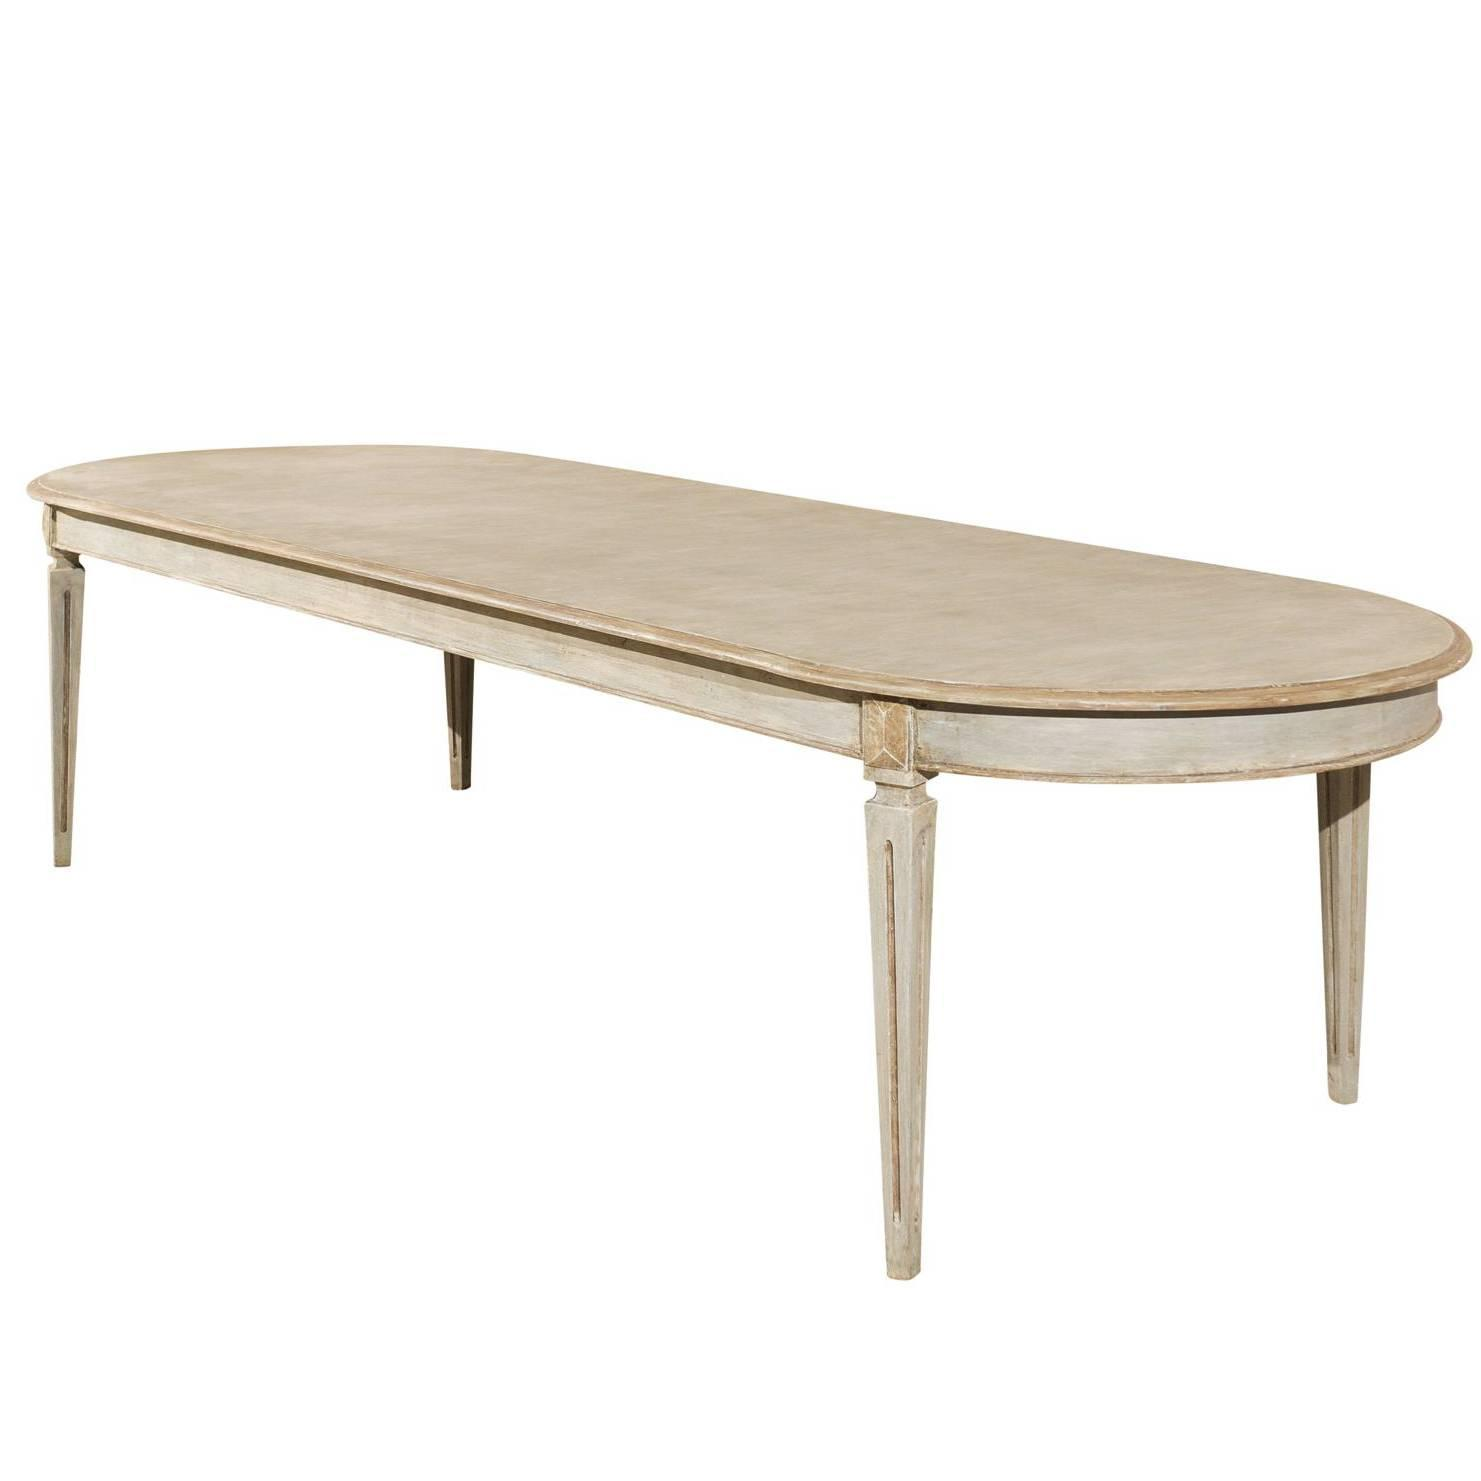 Swedish oval shaped gustavian style dining table at 1stdibs Oval dining table